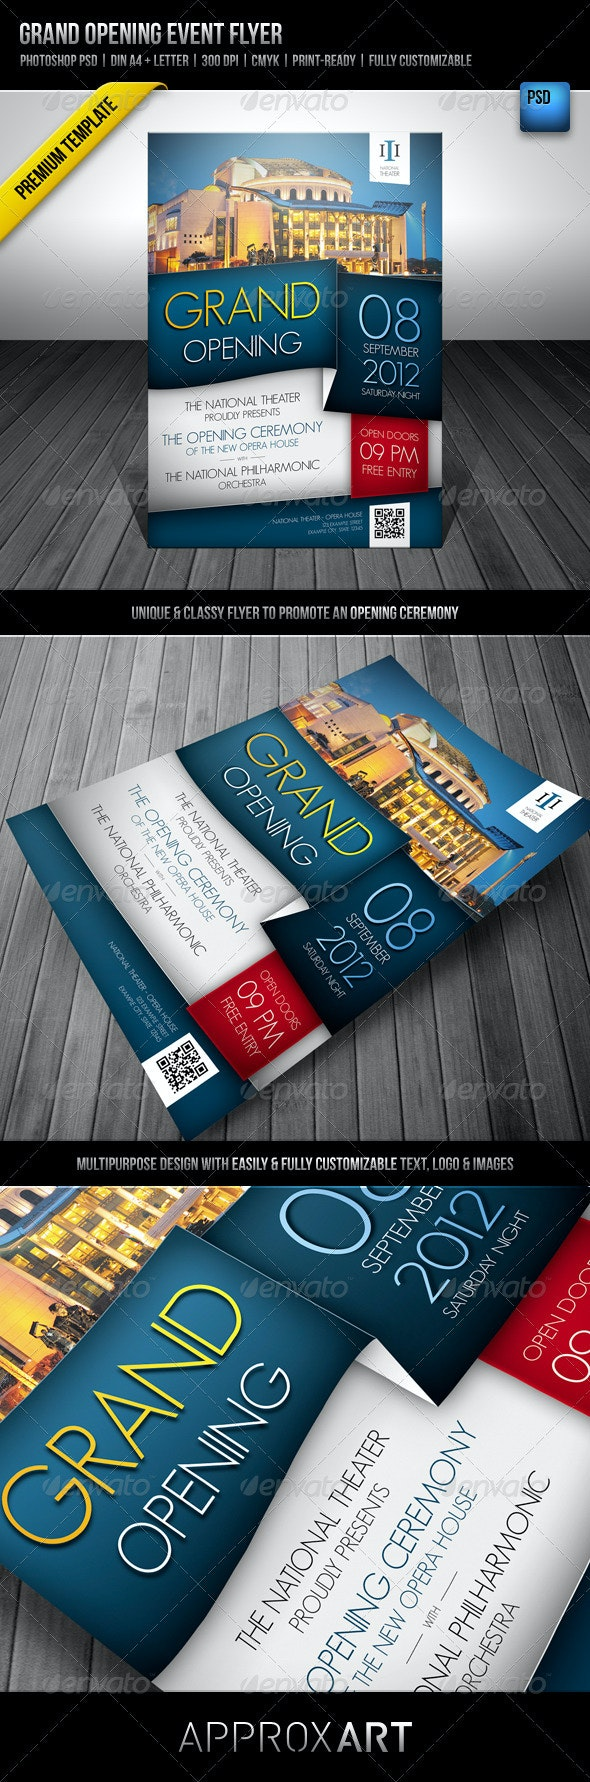 Grand Opening Event Flyer - Miscellaneous Events